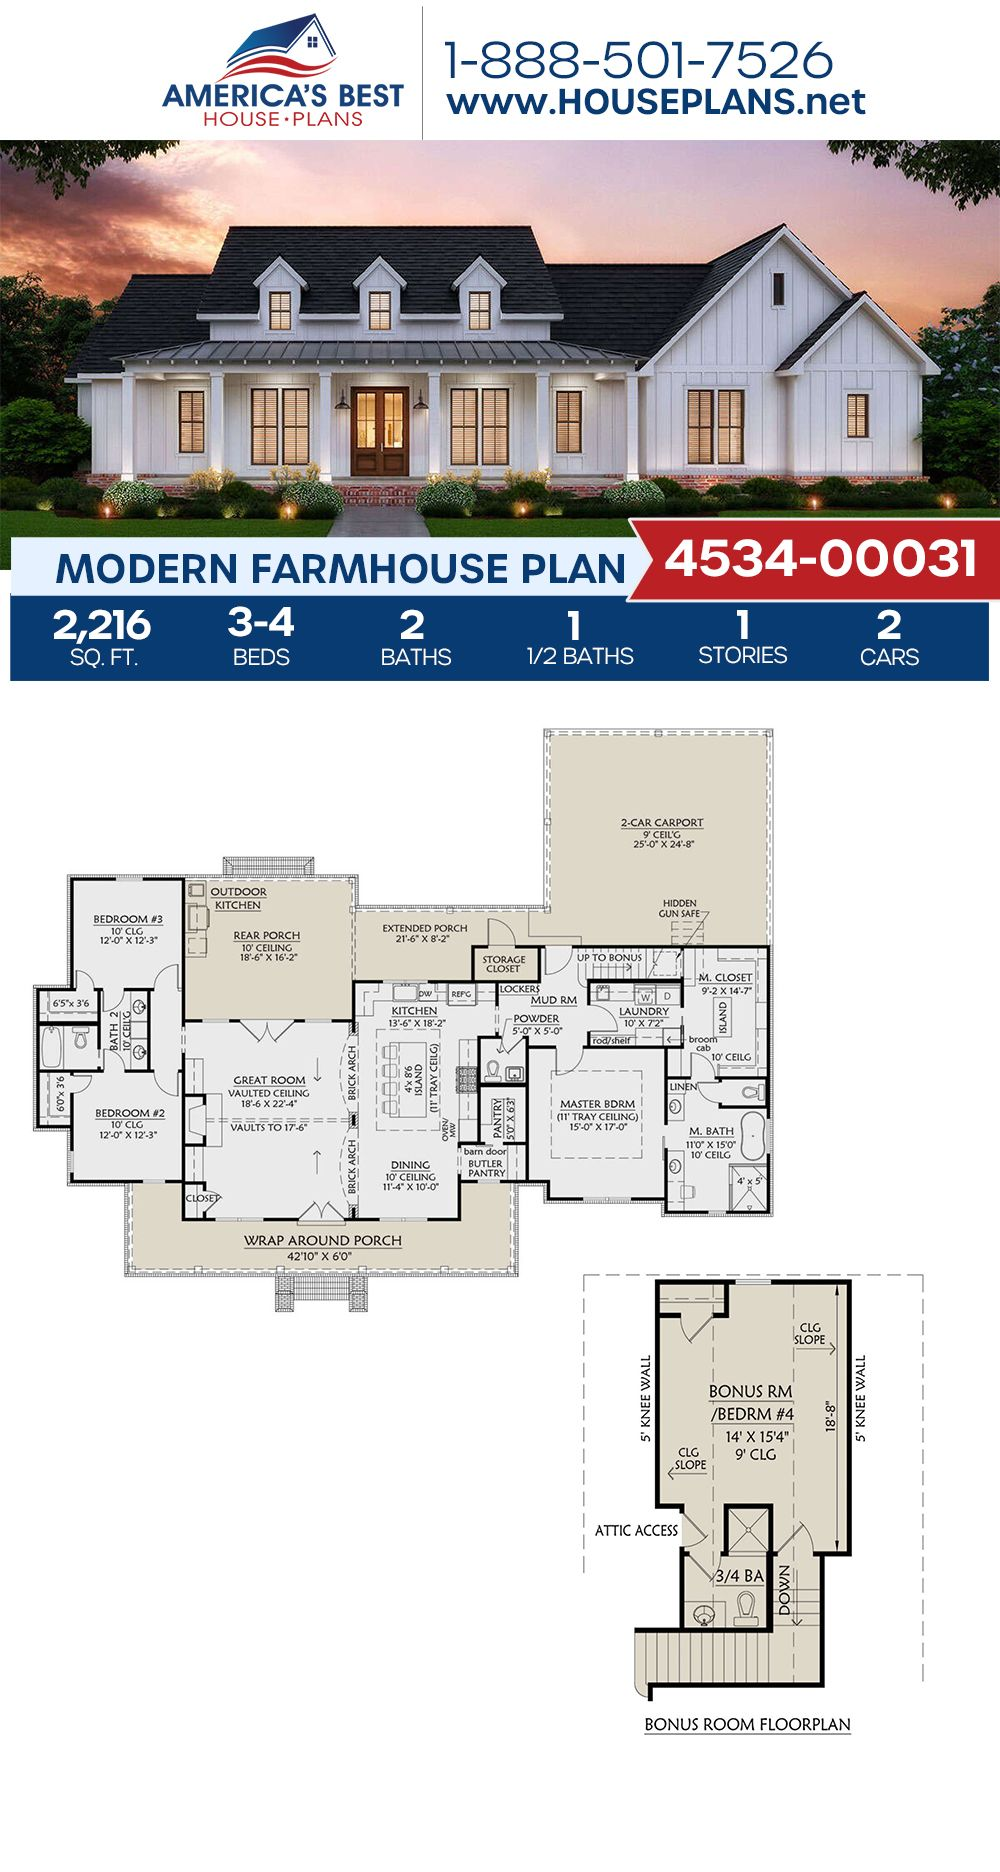 House Plan 4534 00031 Modern Farmhouse Plan 2 216 Square Feet 3 4 Bedrooms 2 5 Bathrooms House Plans Farmhouse Modern Farmhouse Plans Porch House Plans